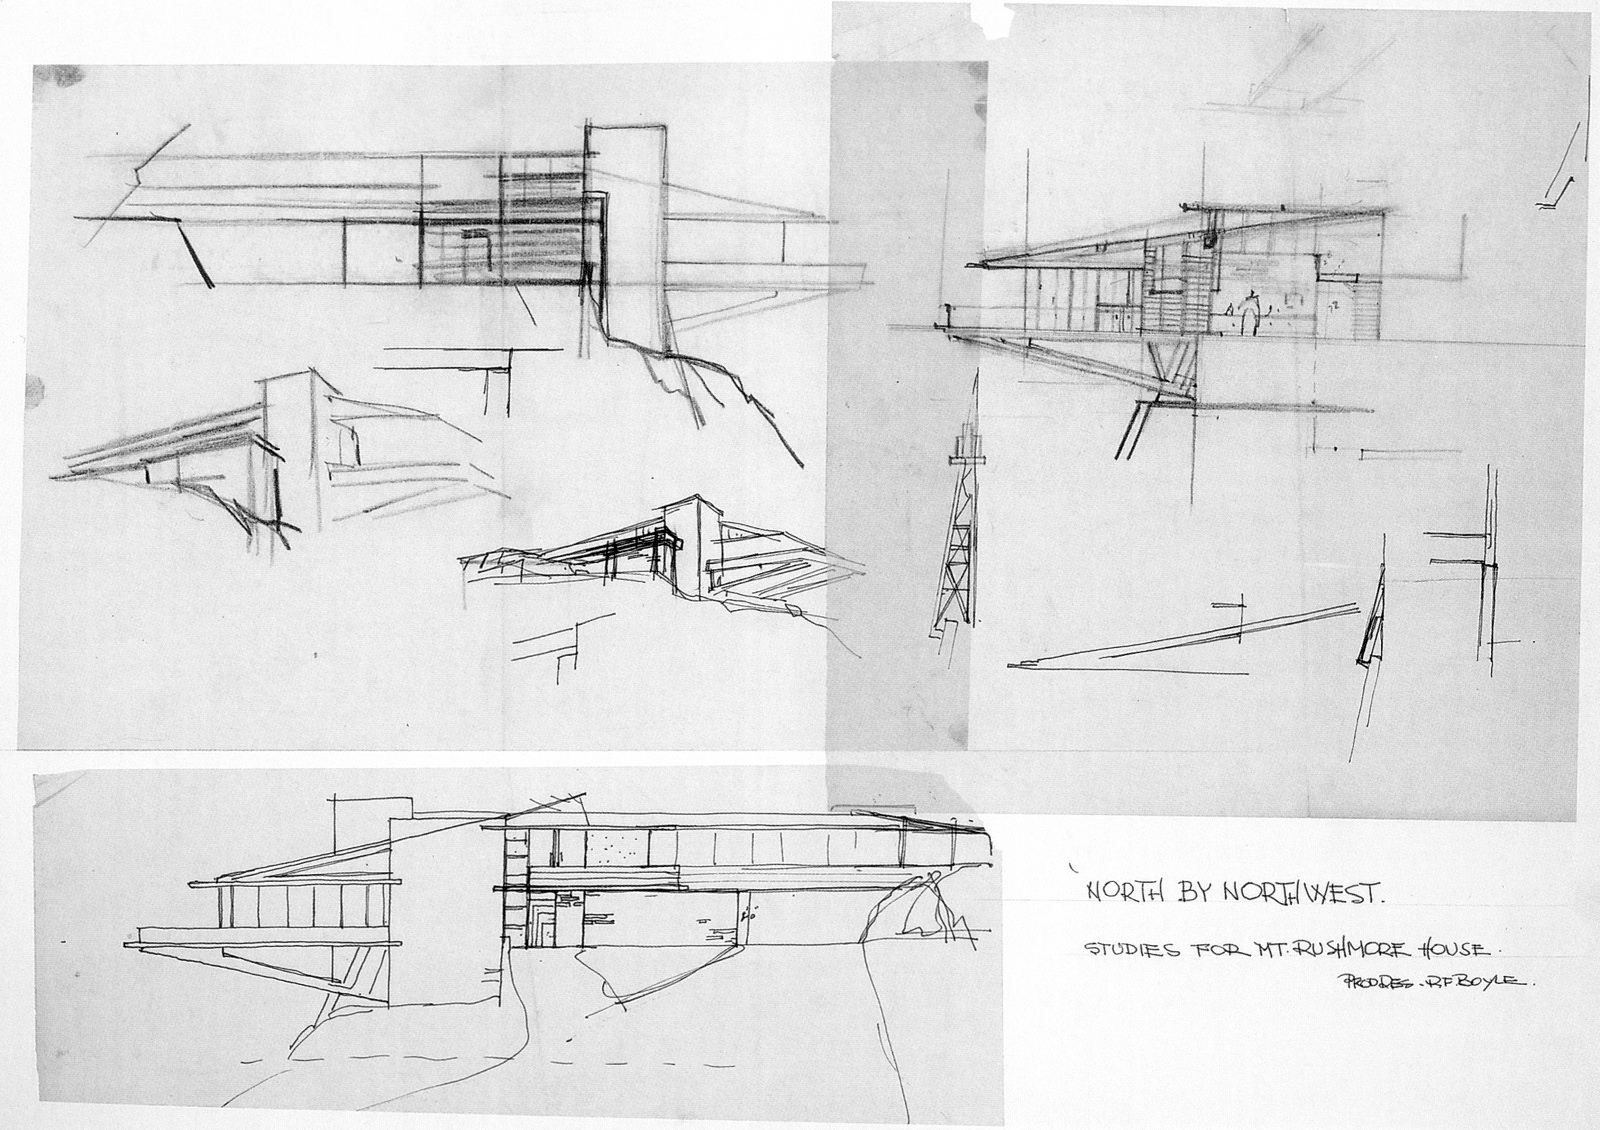 Studies for Mt. Rushmore House